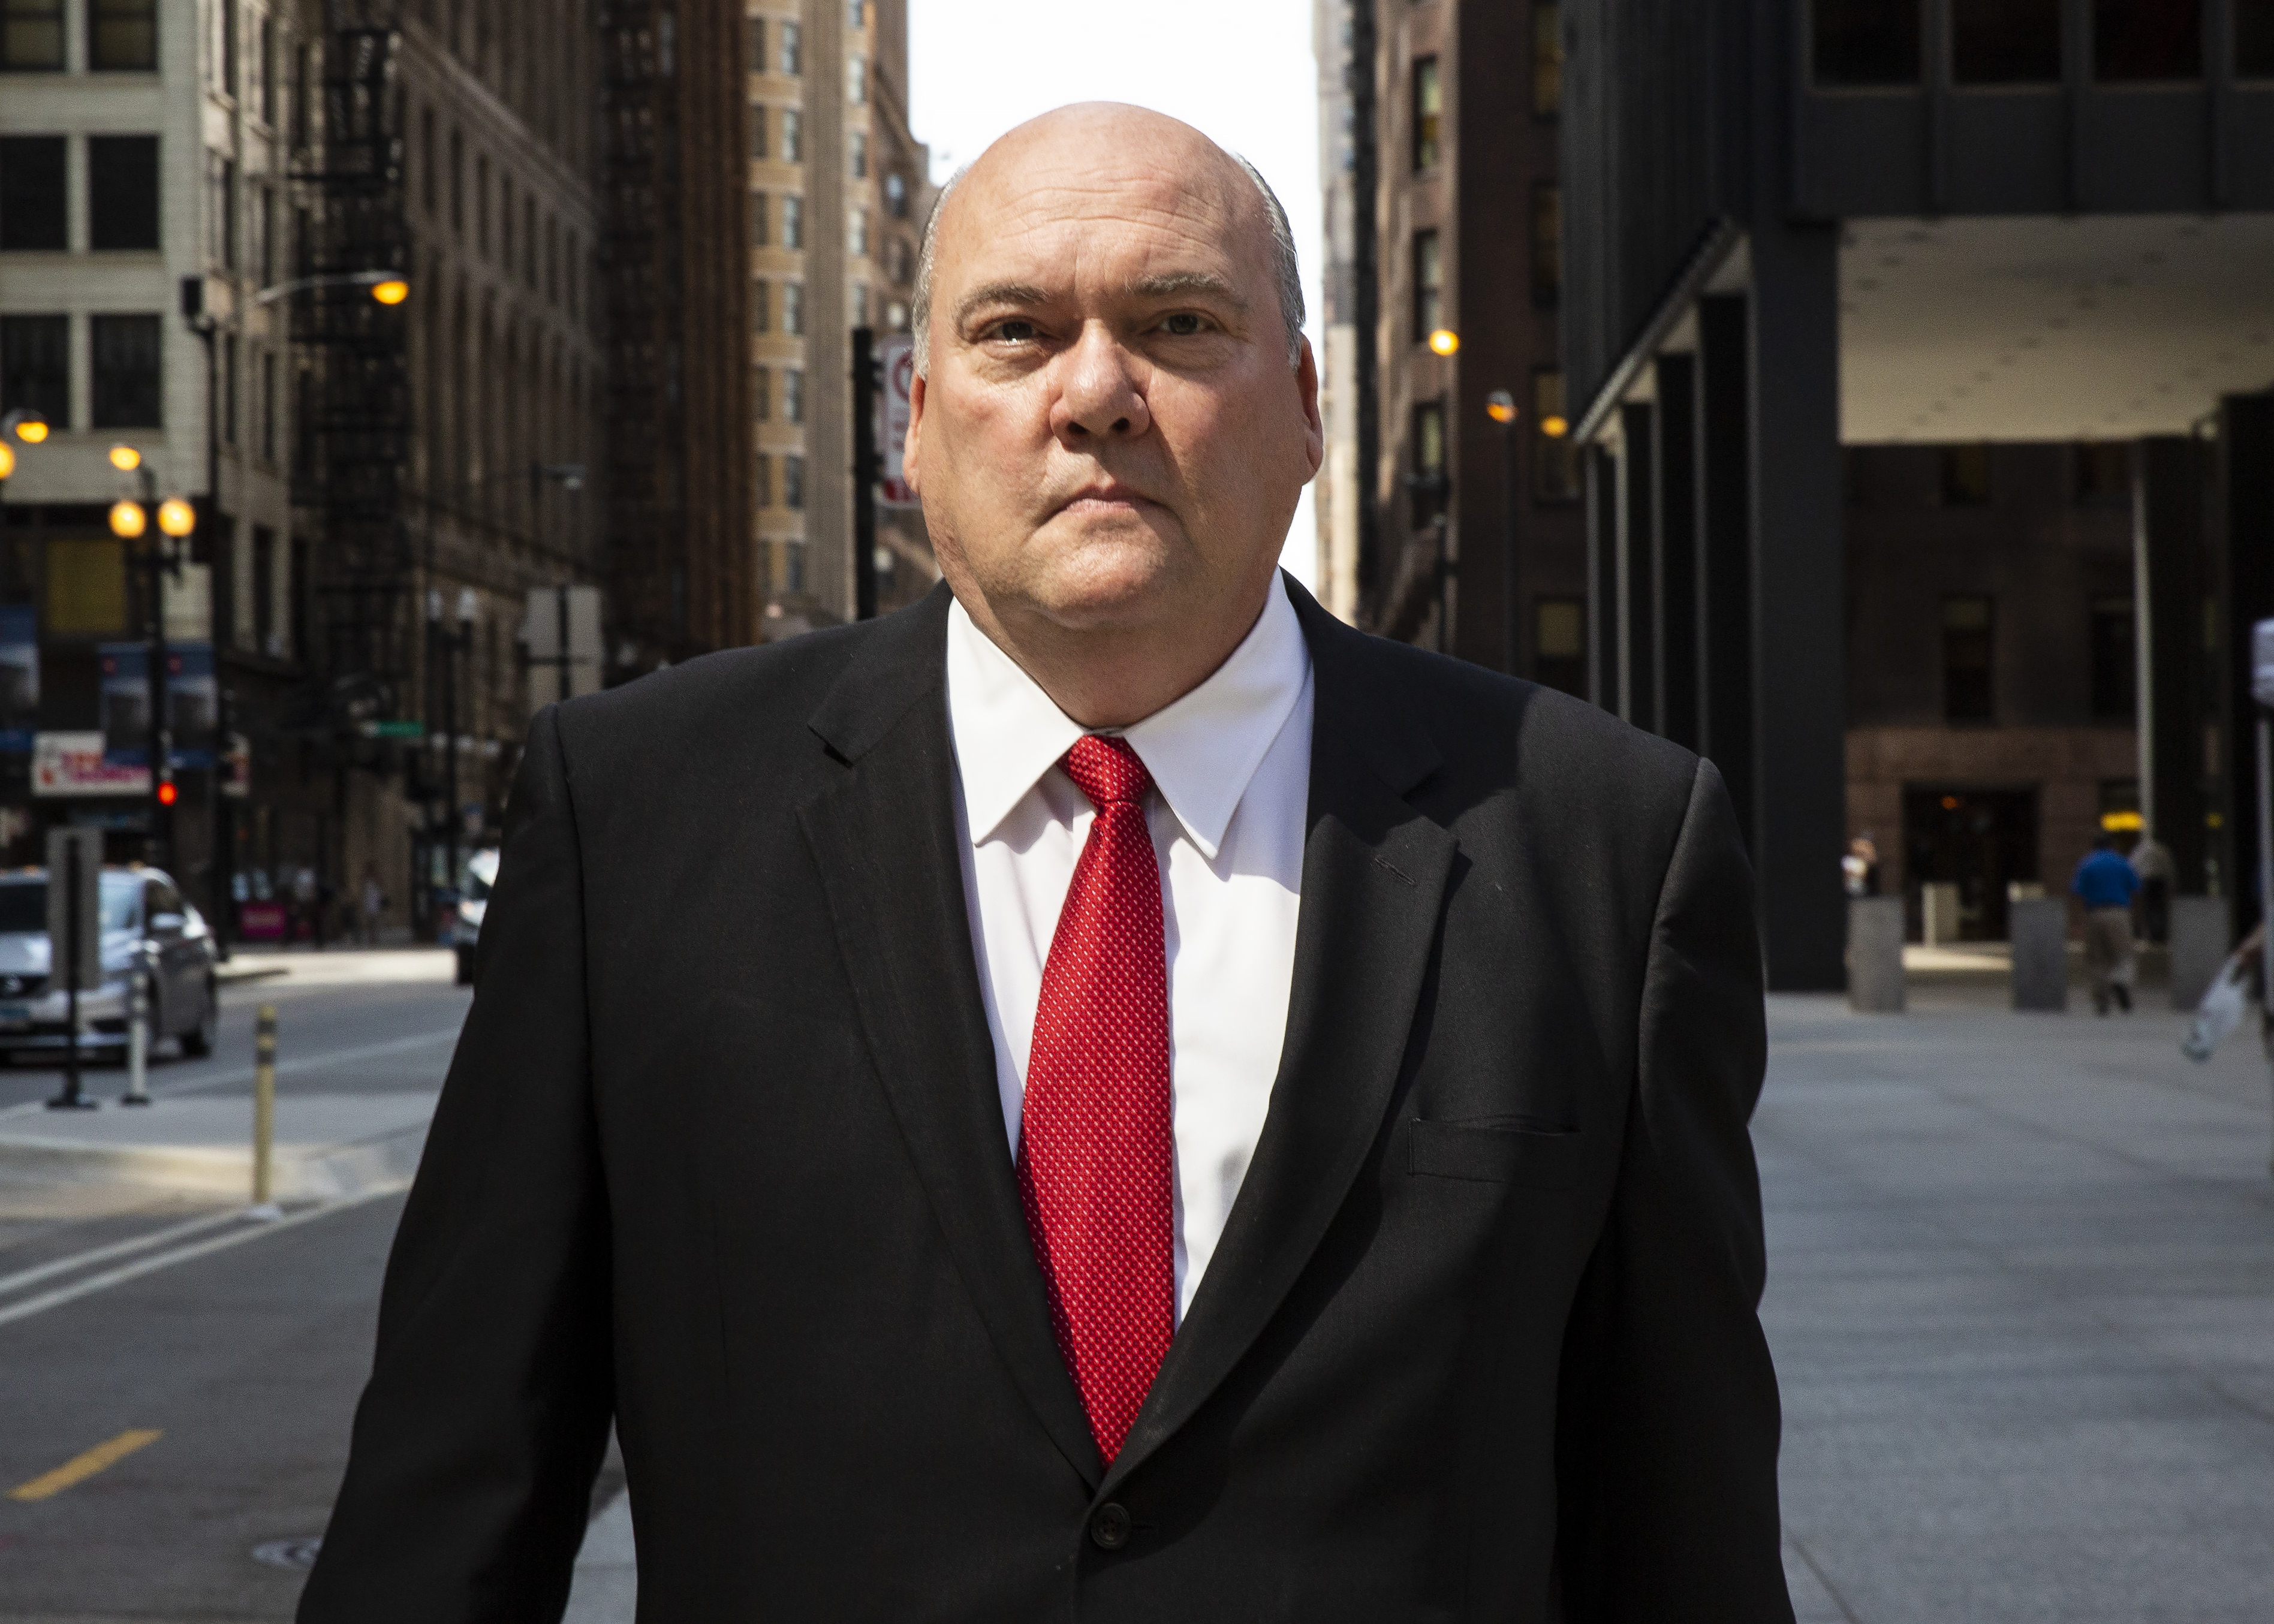 Former longtime Chicago Teamsters union boss John T. Coli Sr. leaving court after pleading guilty to taking part in a scheme to shake down a Chicago film studio.